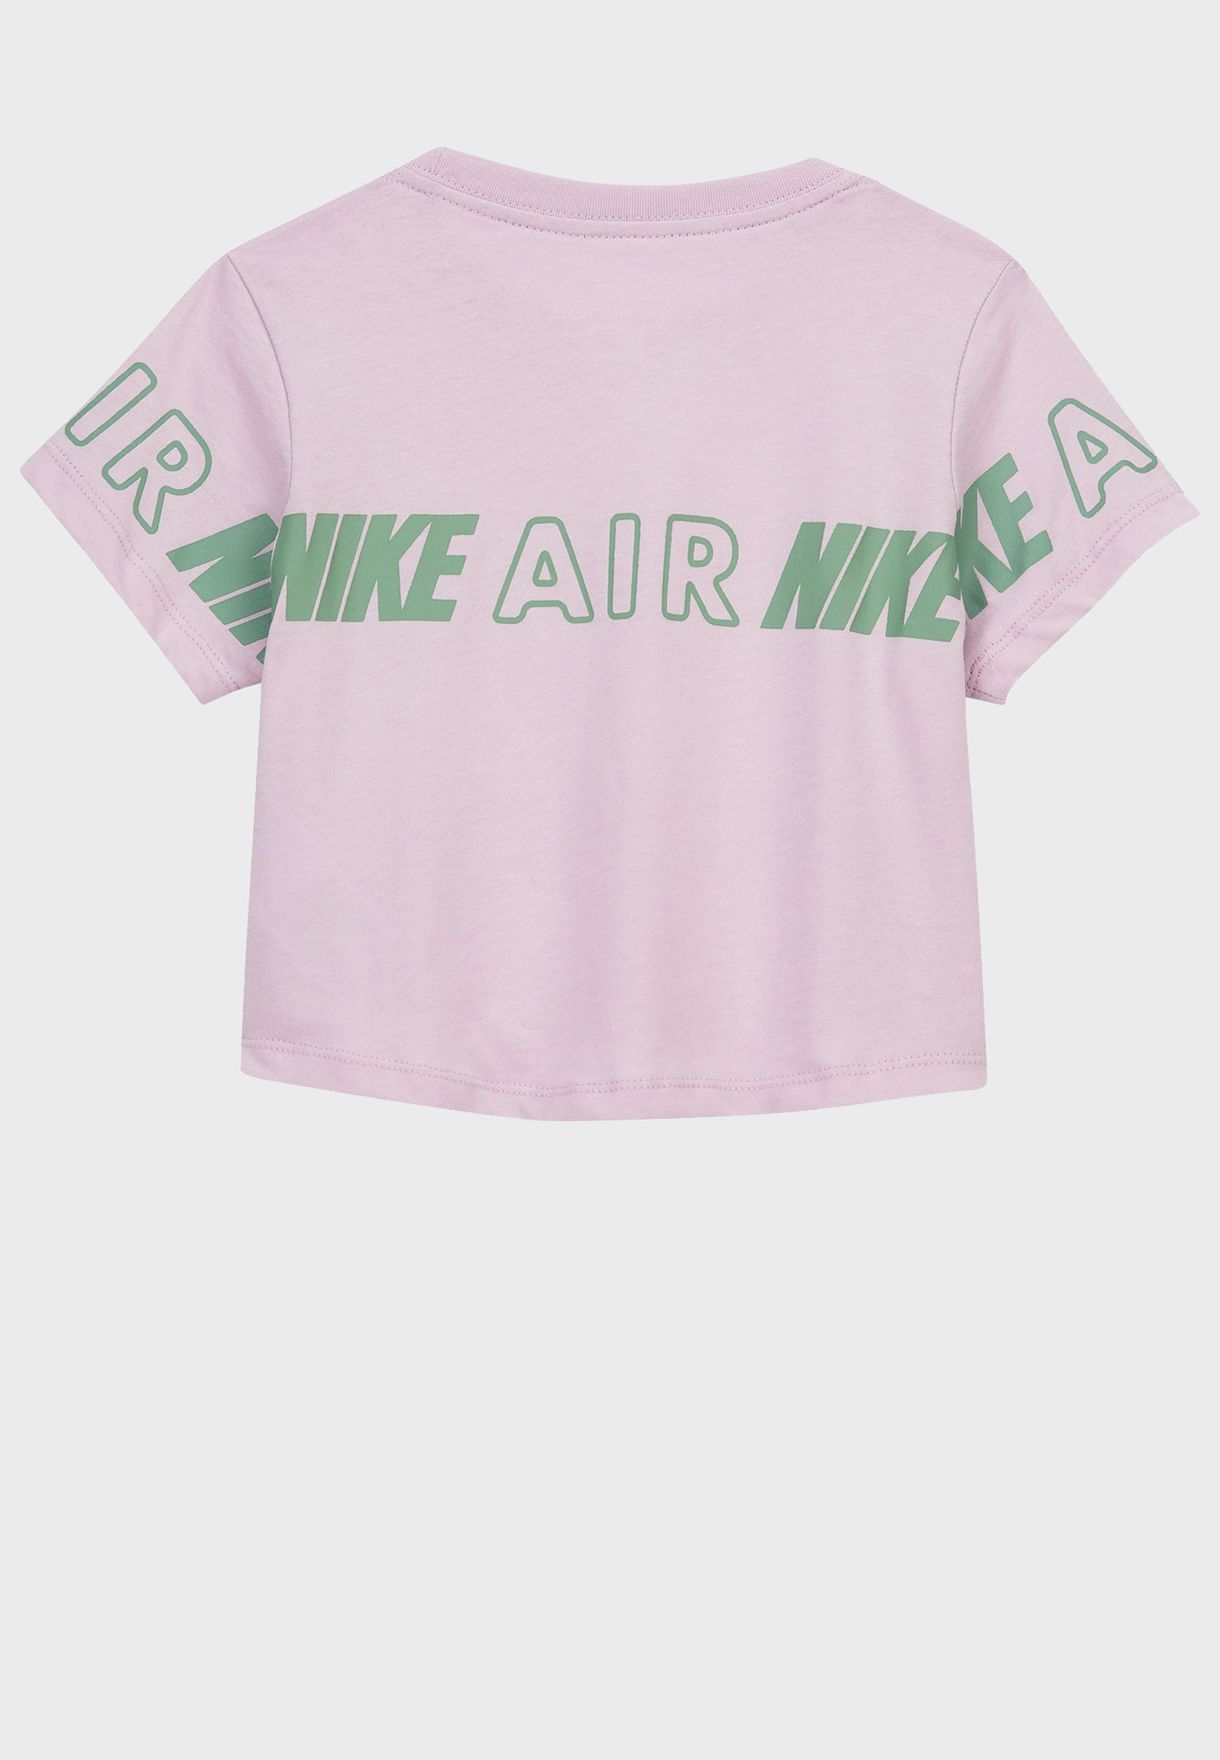 Youth NSW Air Taping Cropped T-Shirt